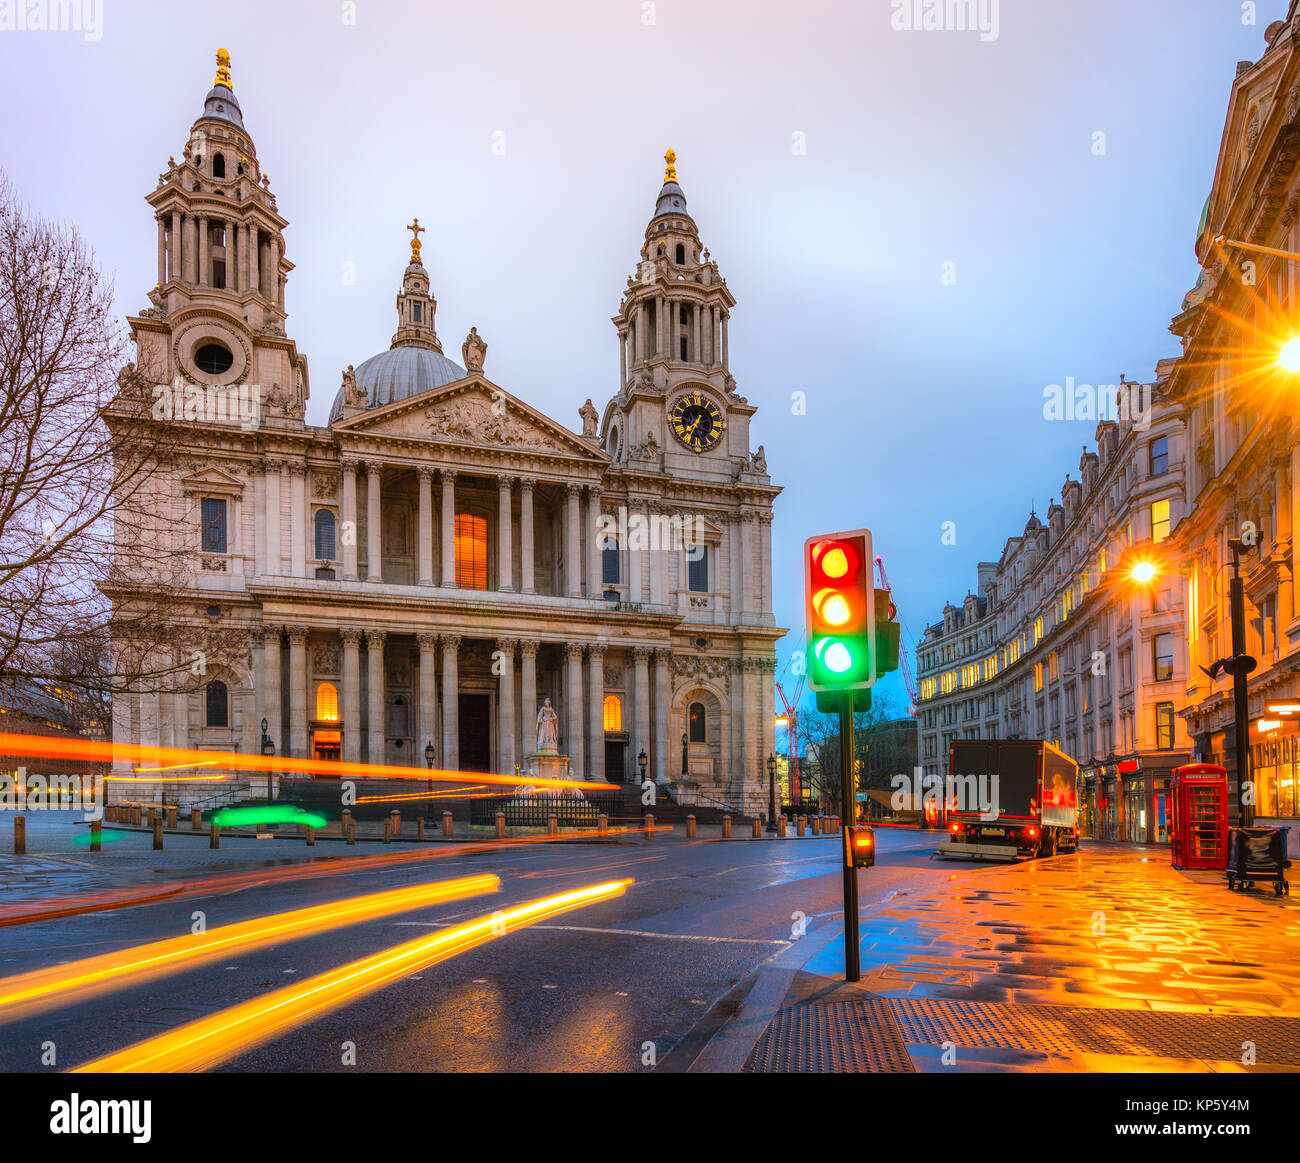 St. Pauls cathedral at dusk, London, UK - Stock Image